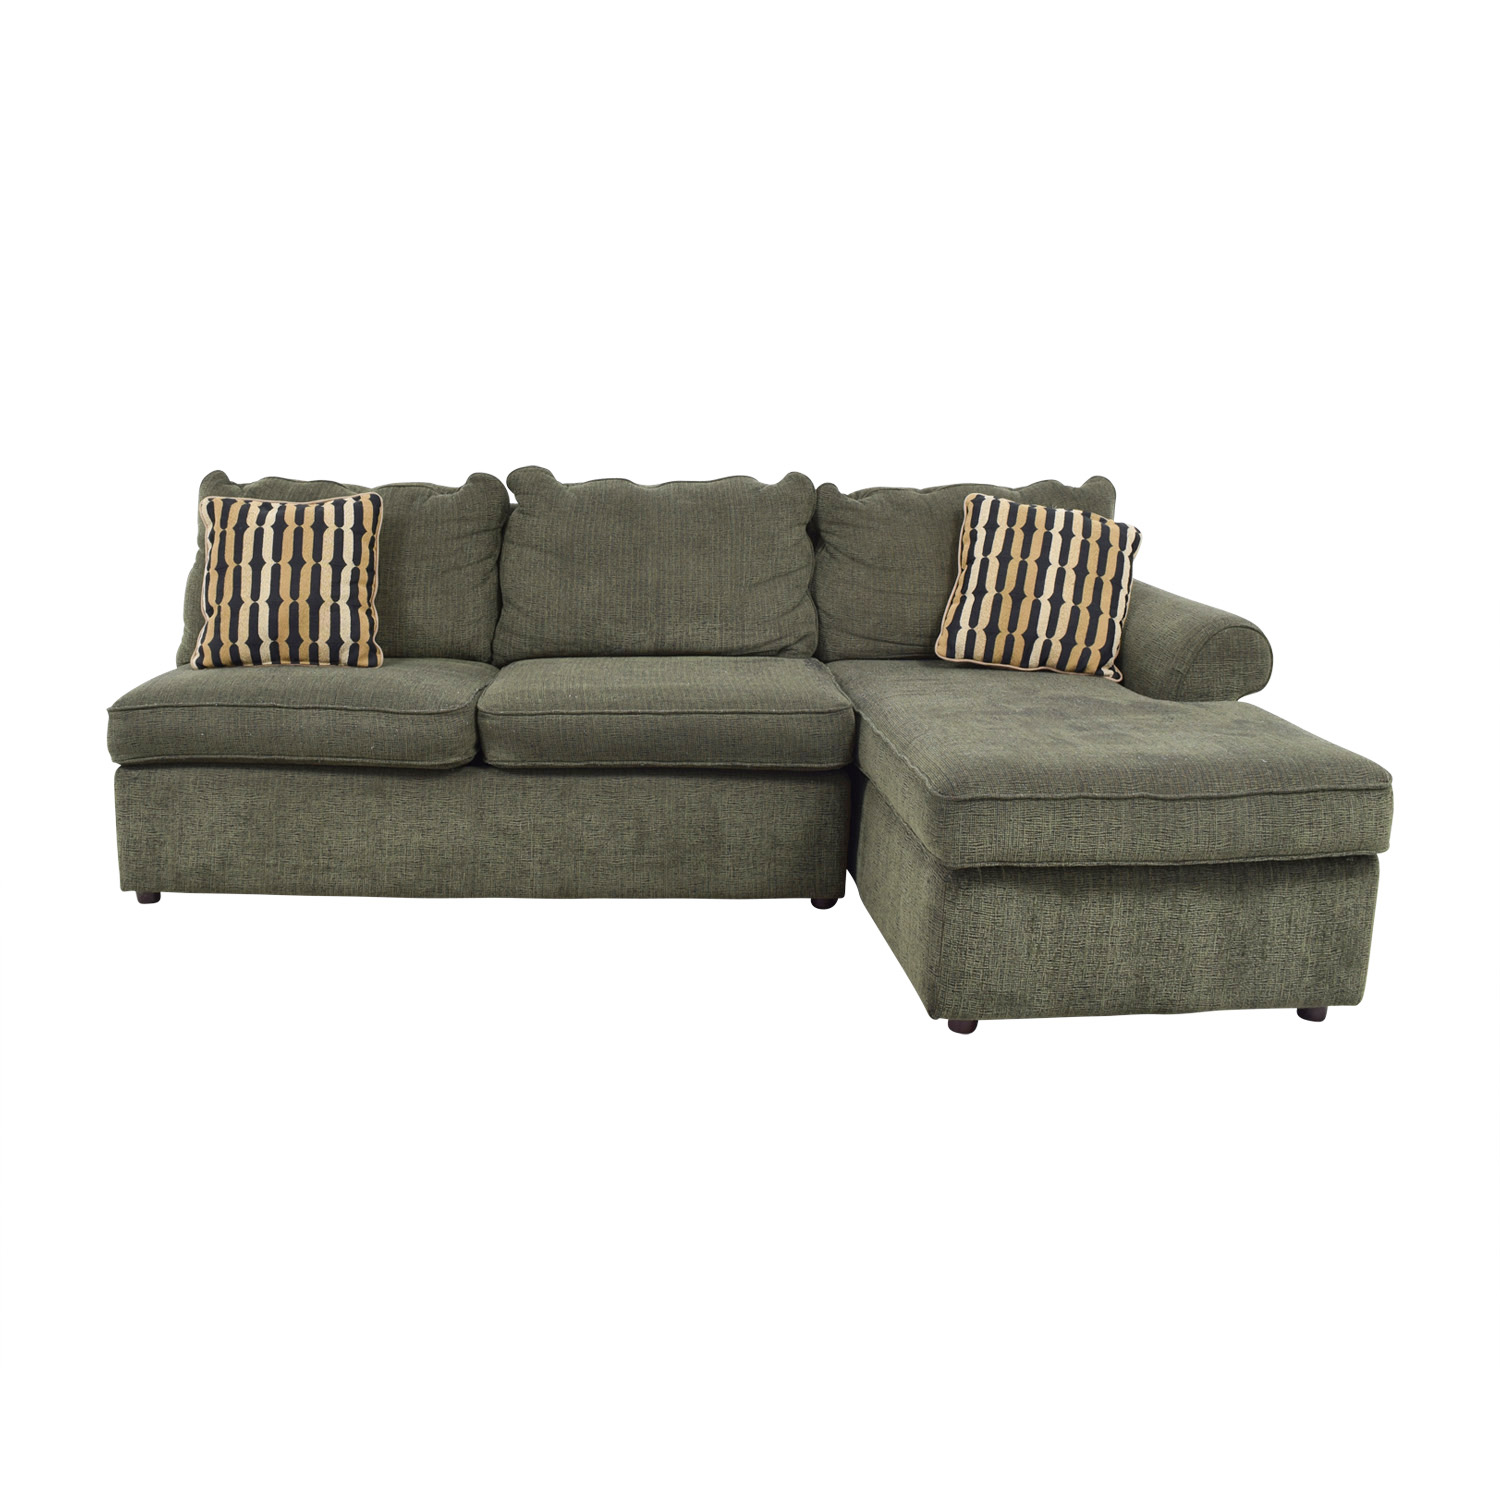 OFF LaZBoy LaZBoy Forest Green LShaped Sectional Couch - La z boy chaise sofa